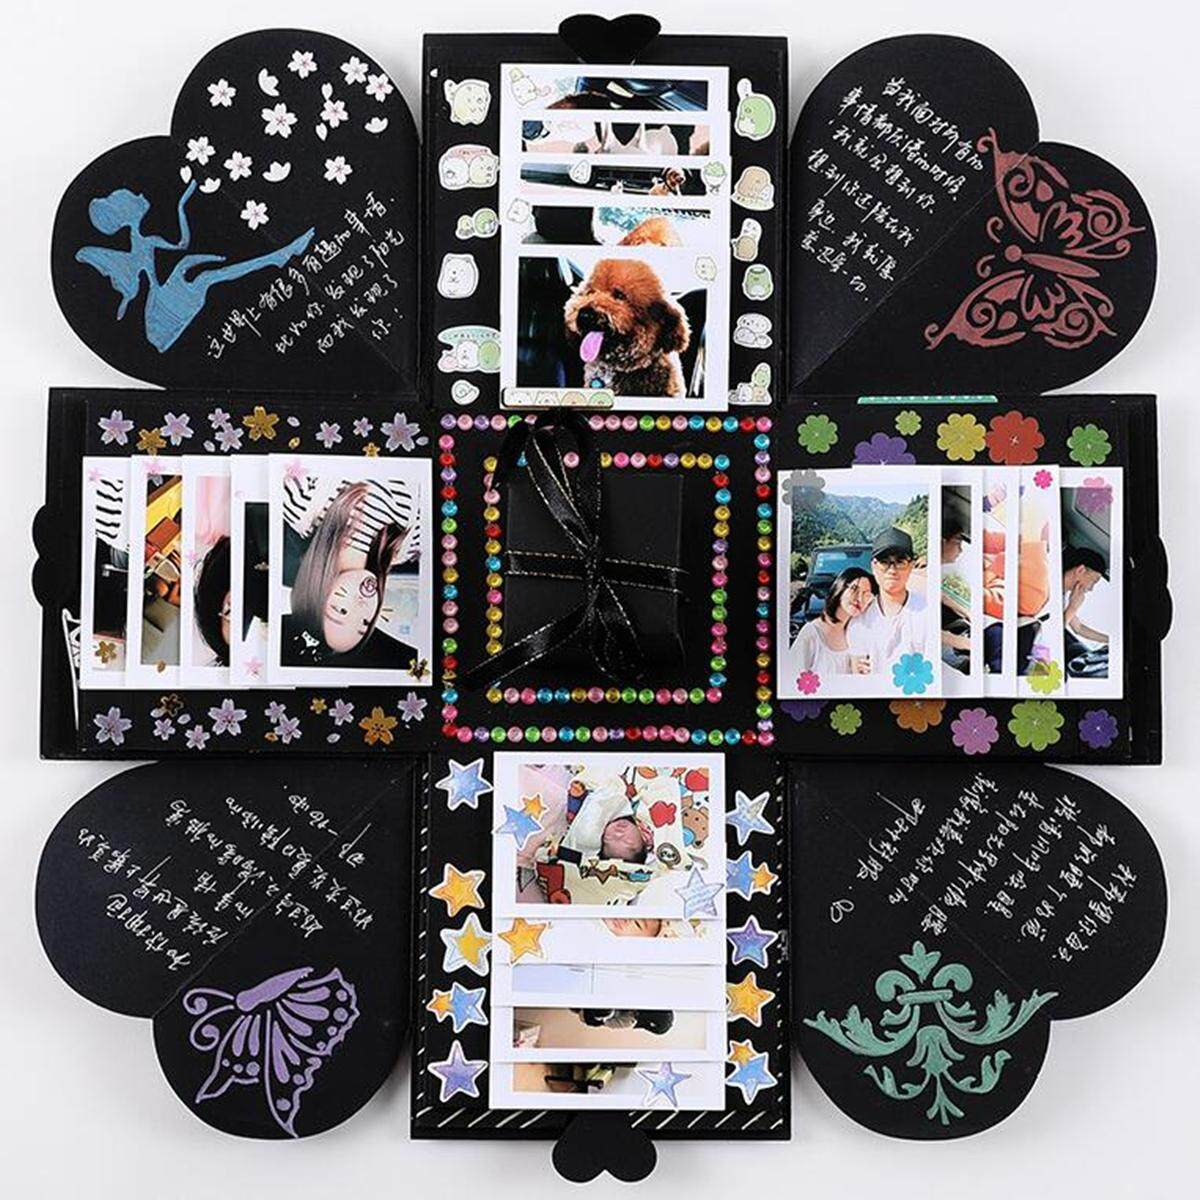 Diy Explosion Box Memory Scrapbook Photo Album Craft Kits Anniversary Gift Party Intl Compare Prices